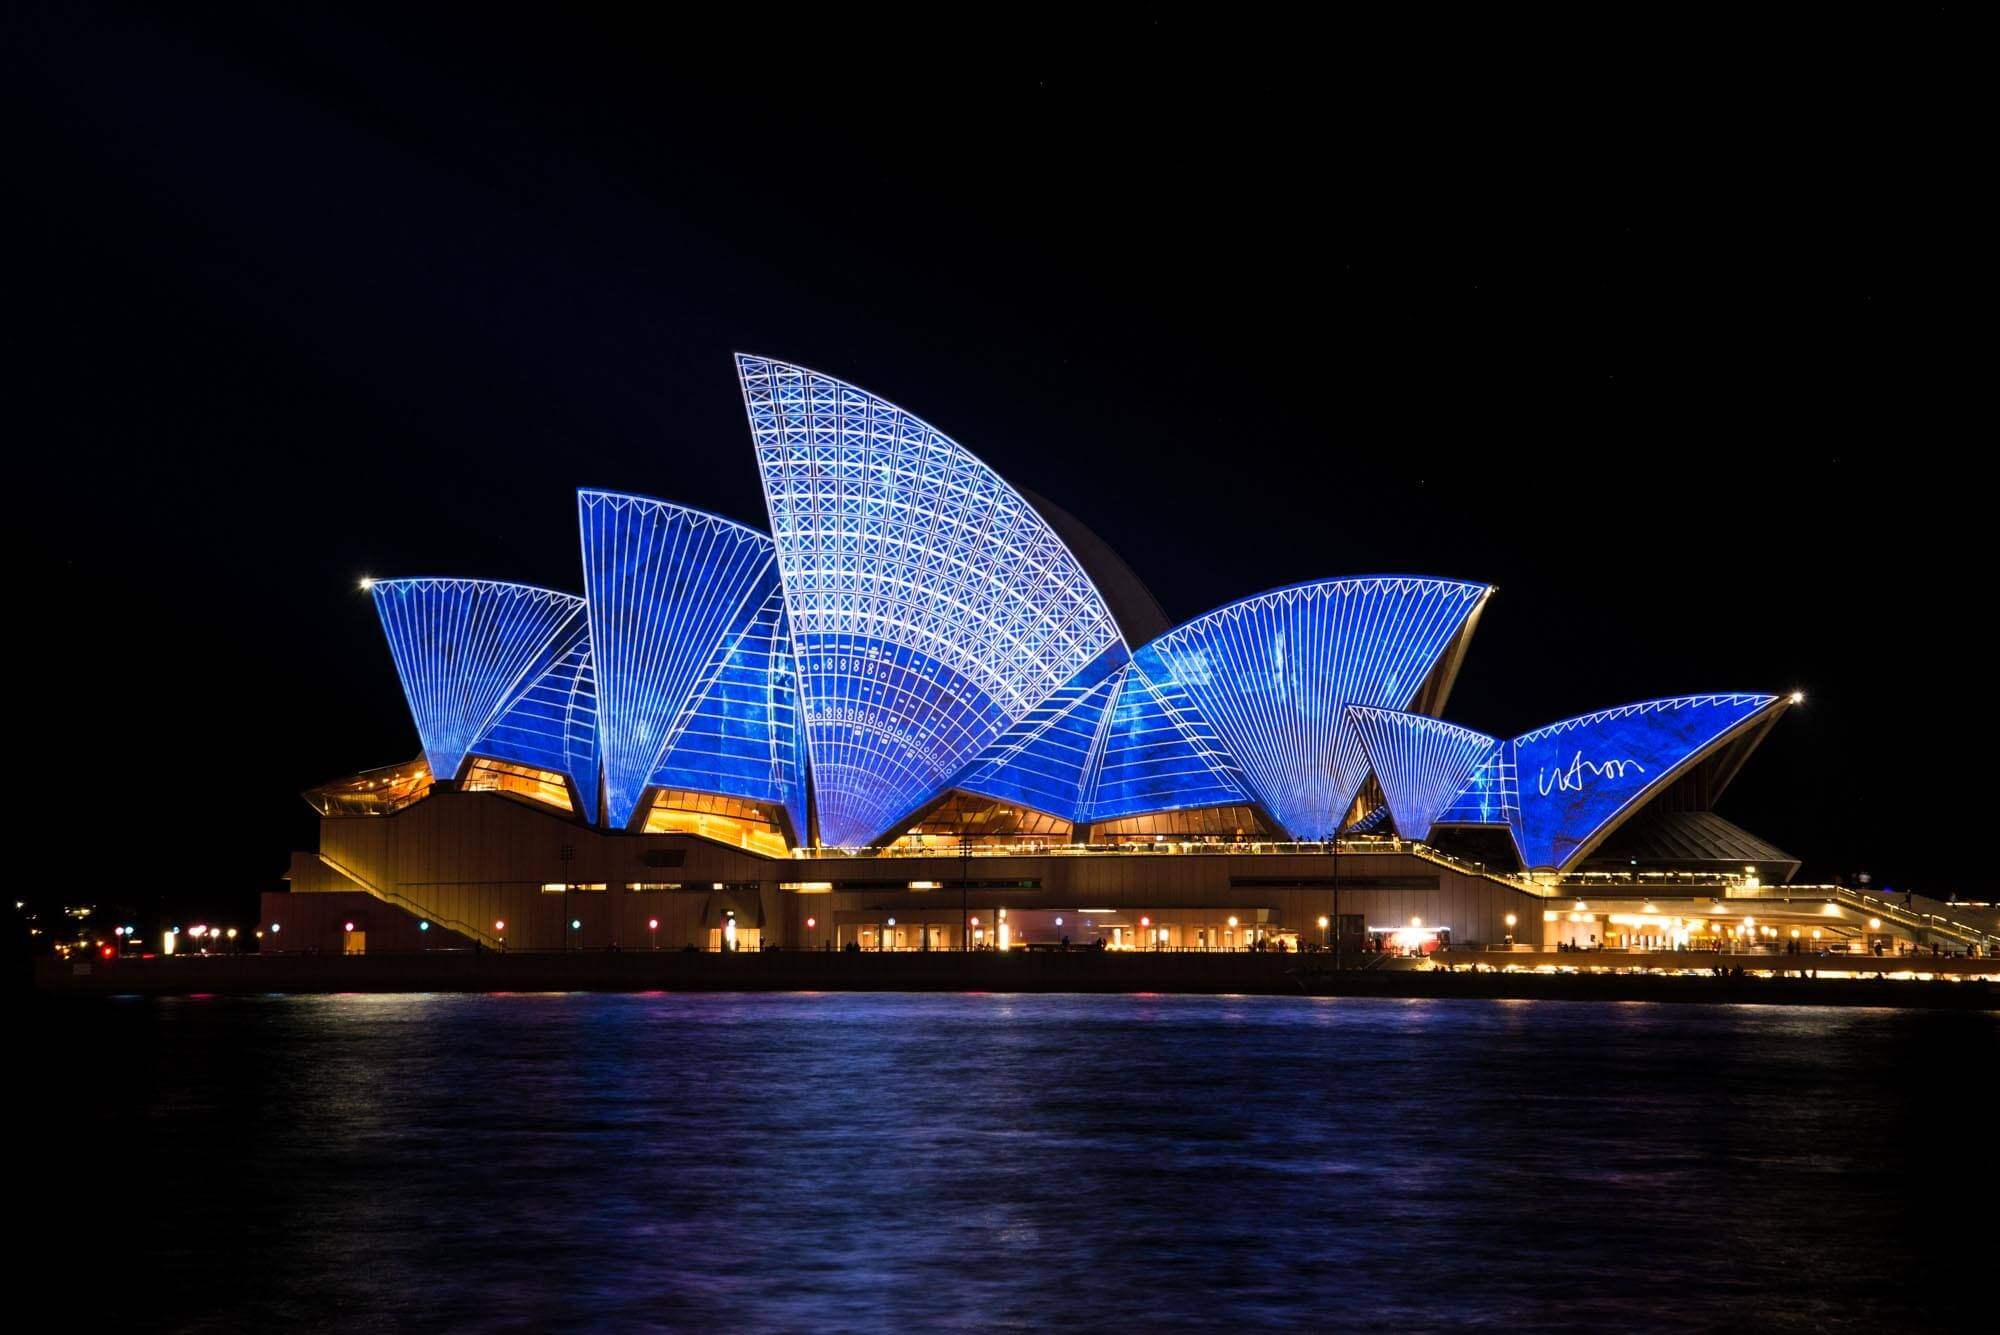 Sydney Opera House illuminated at night